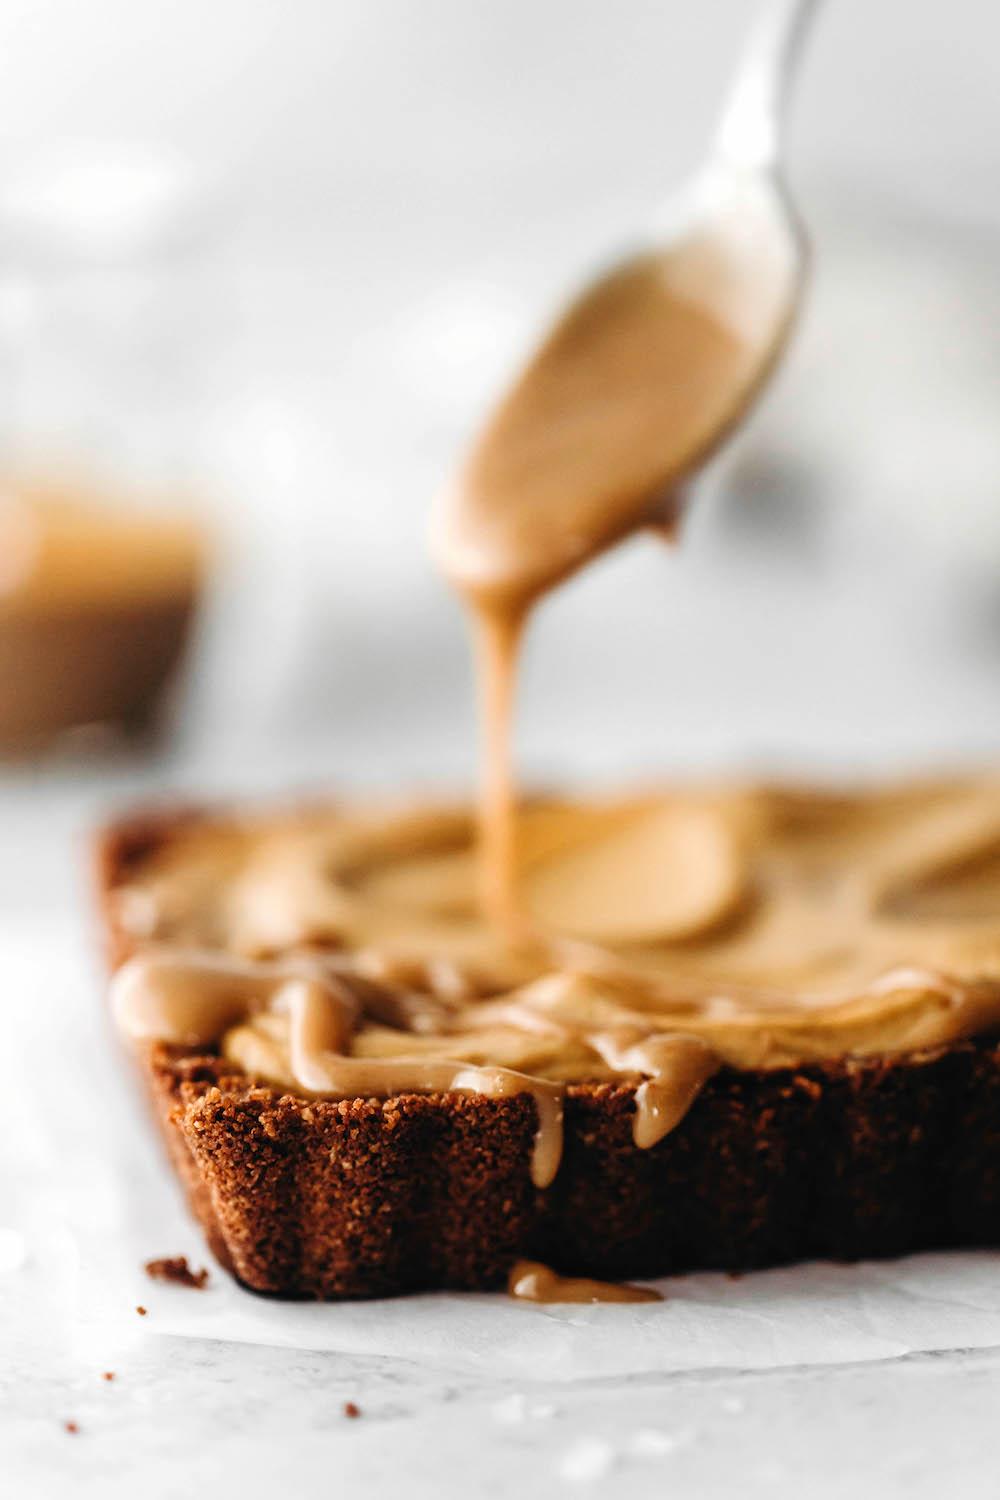 Vegan Pumpkin Tart with Ginger Crust (gluten-free)